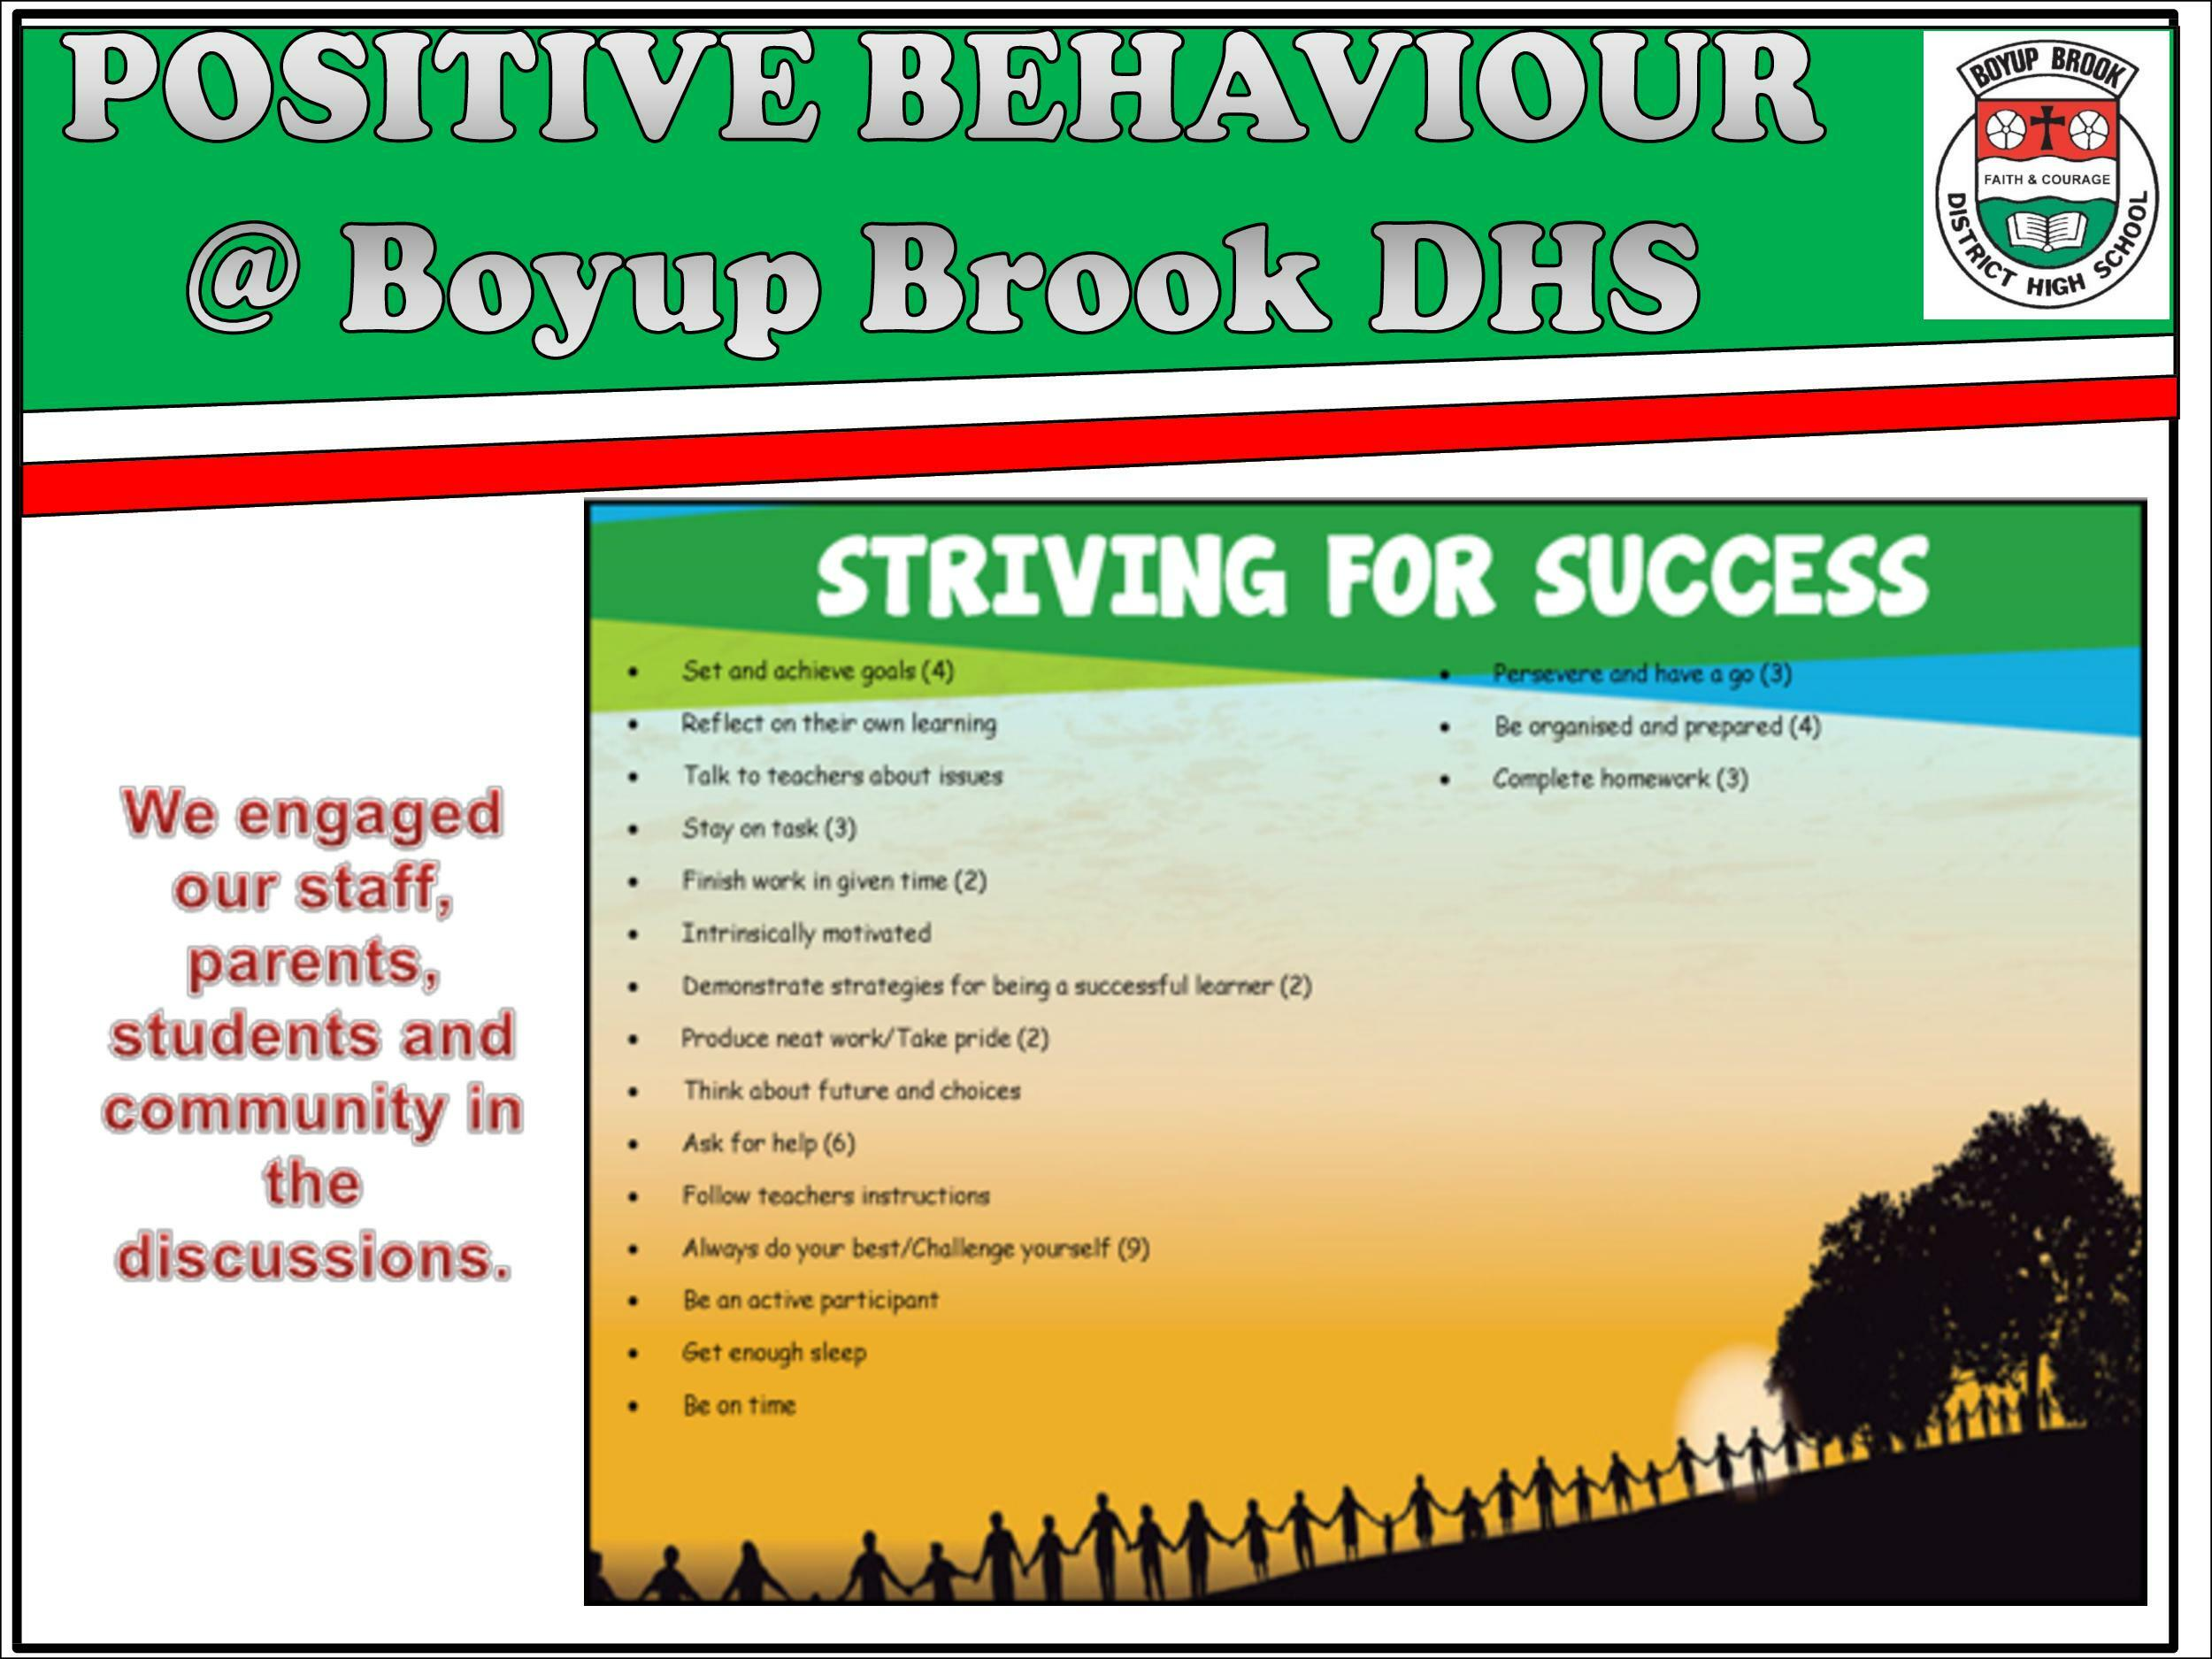 Positive Behaviour Support Page 11